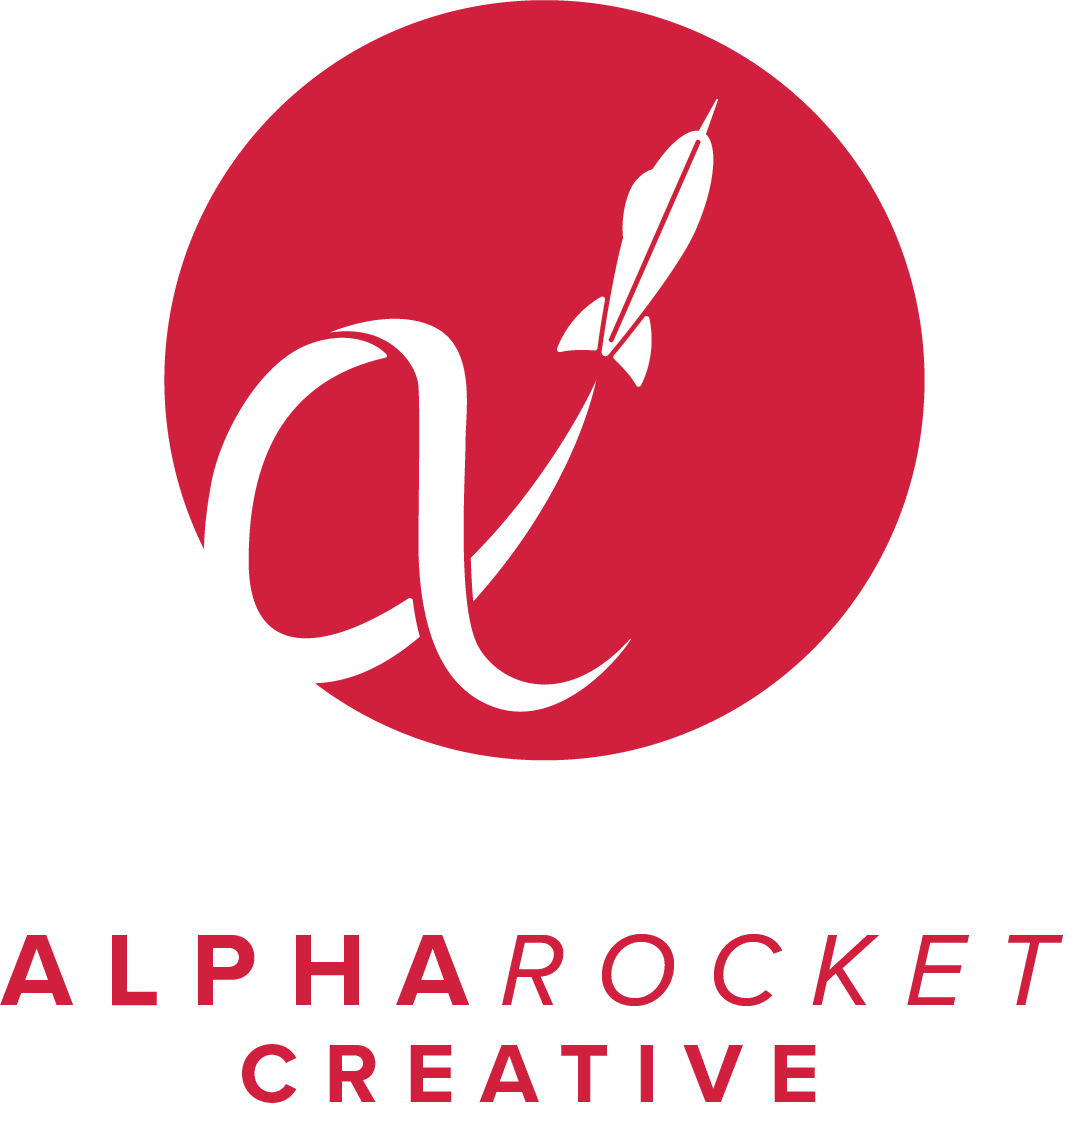 AlphaRocket Creative